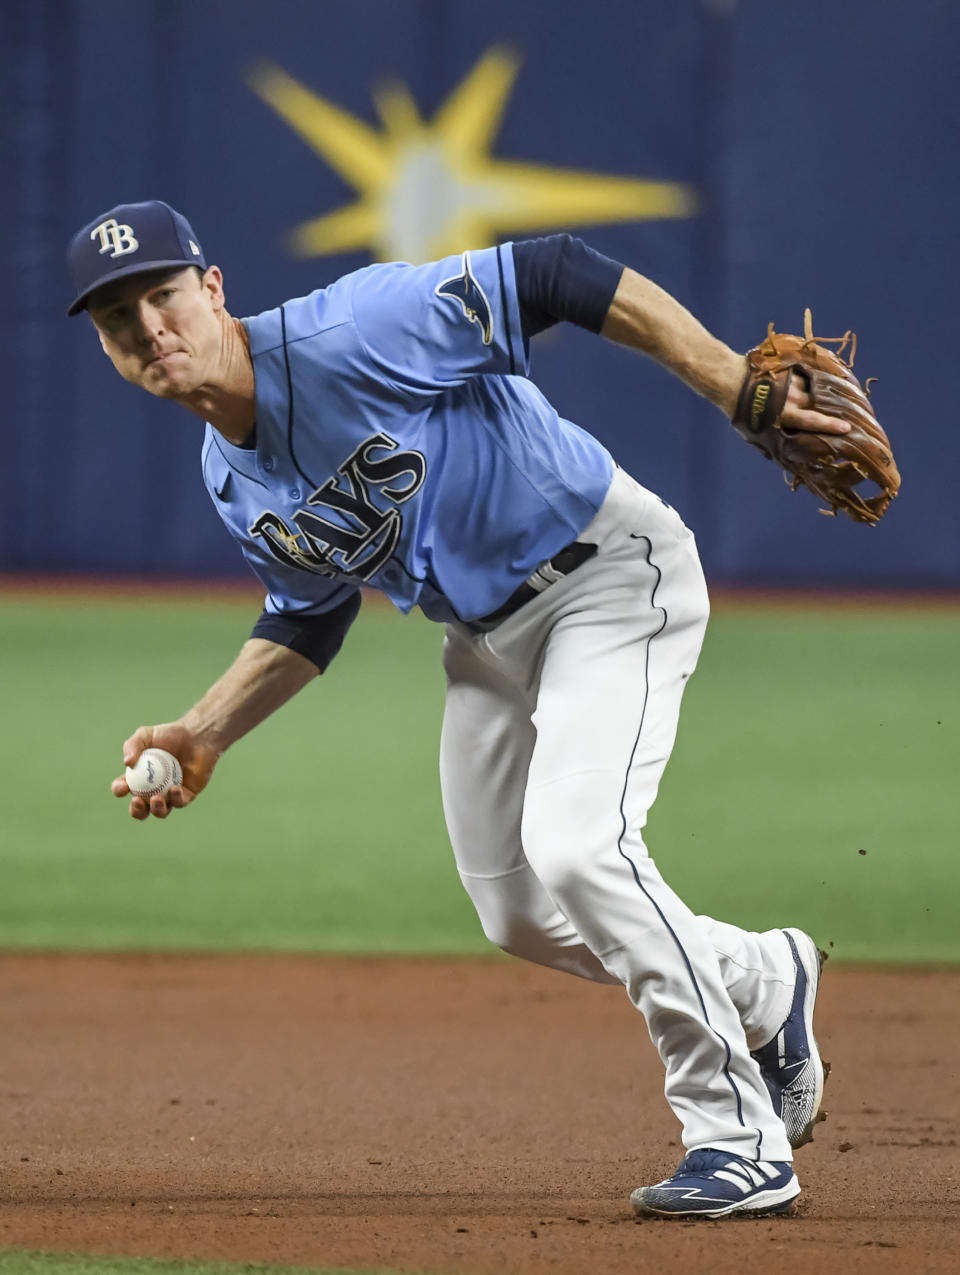 Tampa Bay Rays infielder Joey Wendle barehands an infield single hit by Toronto Blue Jays' Teoscar Hernandez during the first inning of a baseball game Friday, July 9, 2021, in St. Petersburg, Fla.(AP Photo/Steve Nesius)